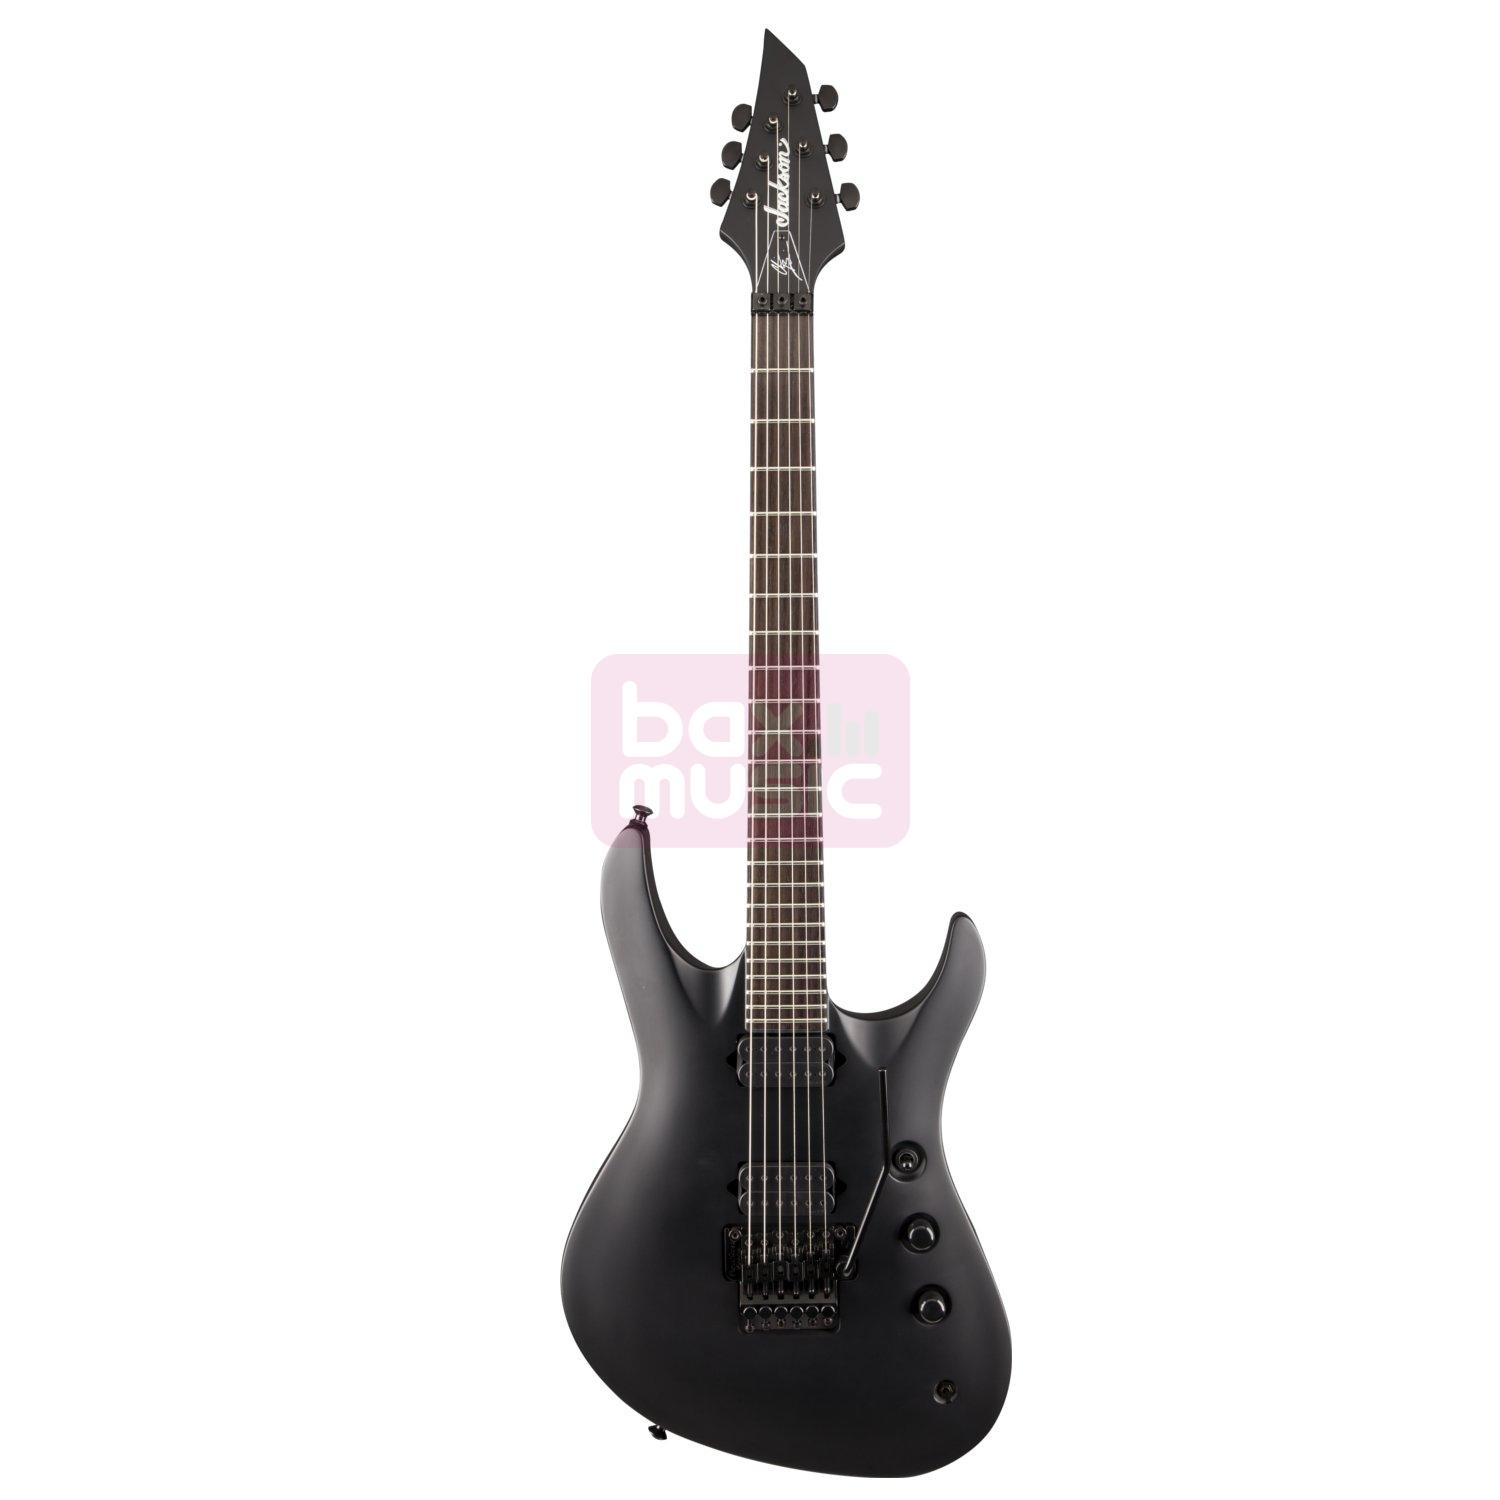 Jackson Chris Broderick Pro Series Soloist 6 Satin Black